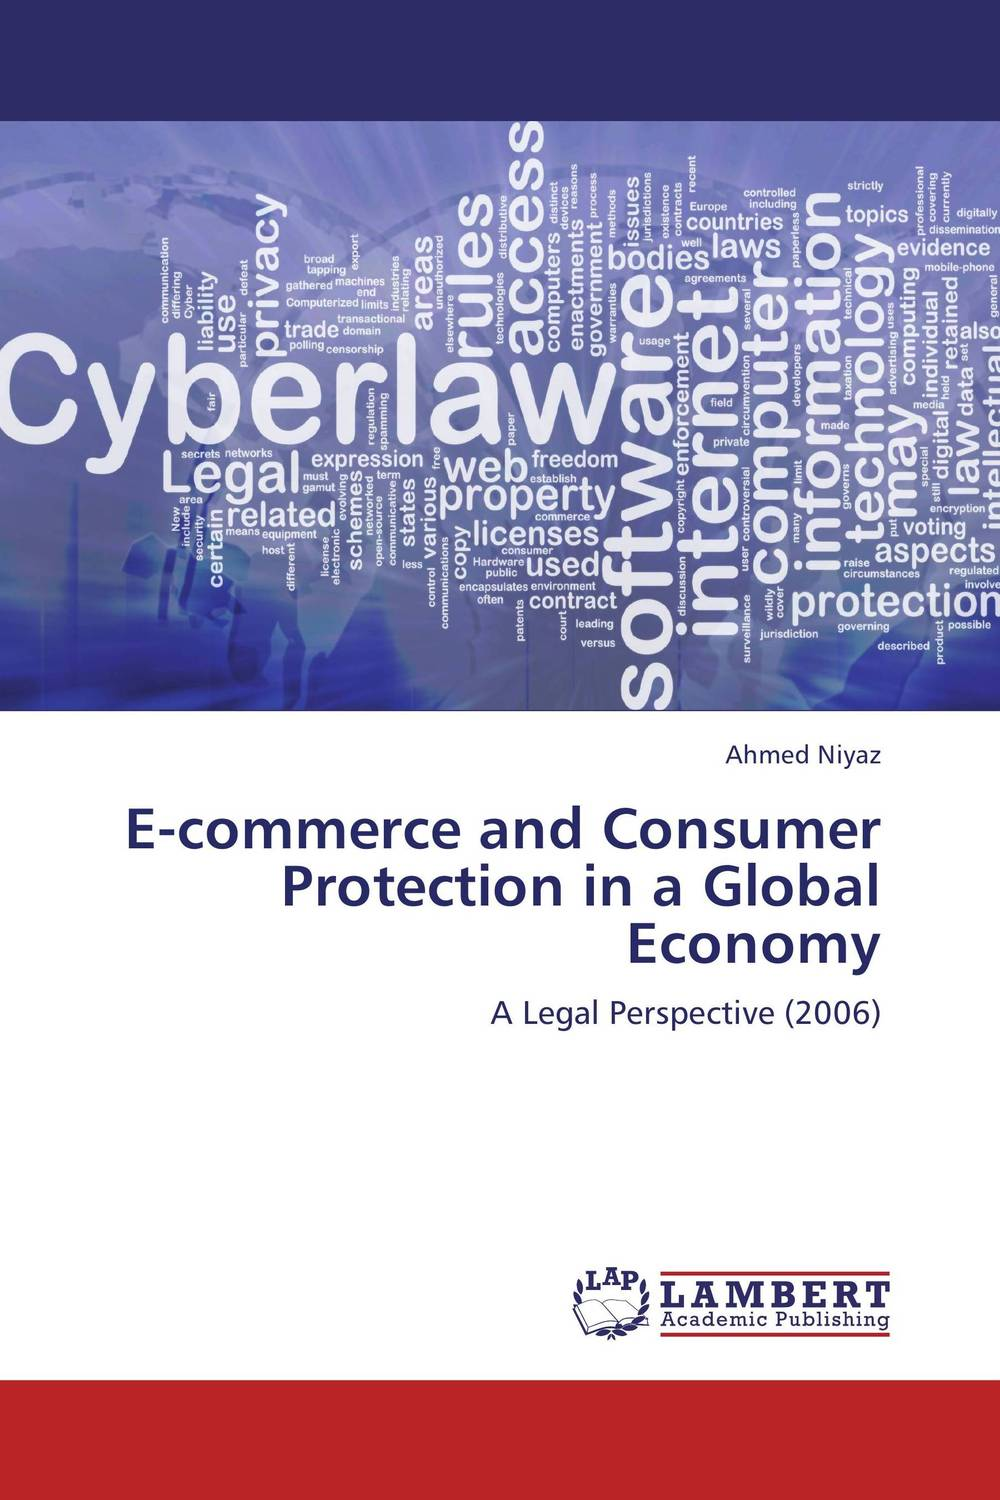 E-commerce and Consumer Protection in a Global Economy chrono